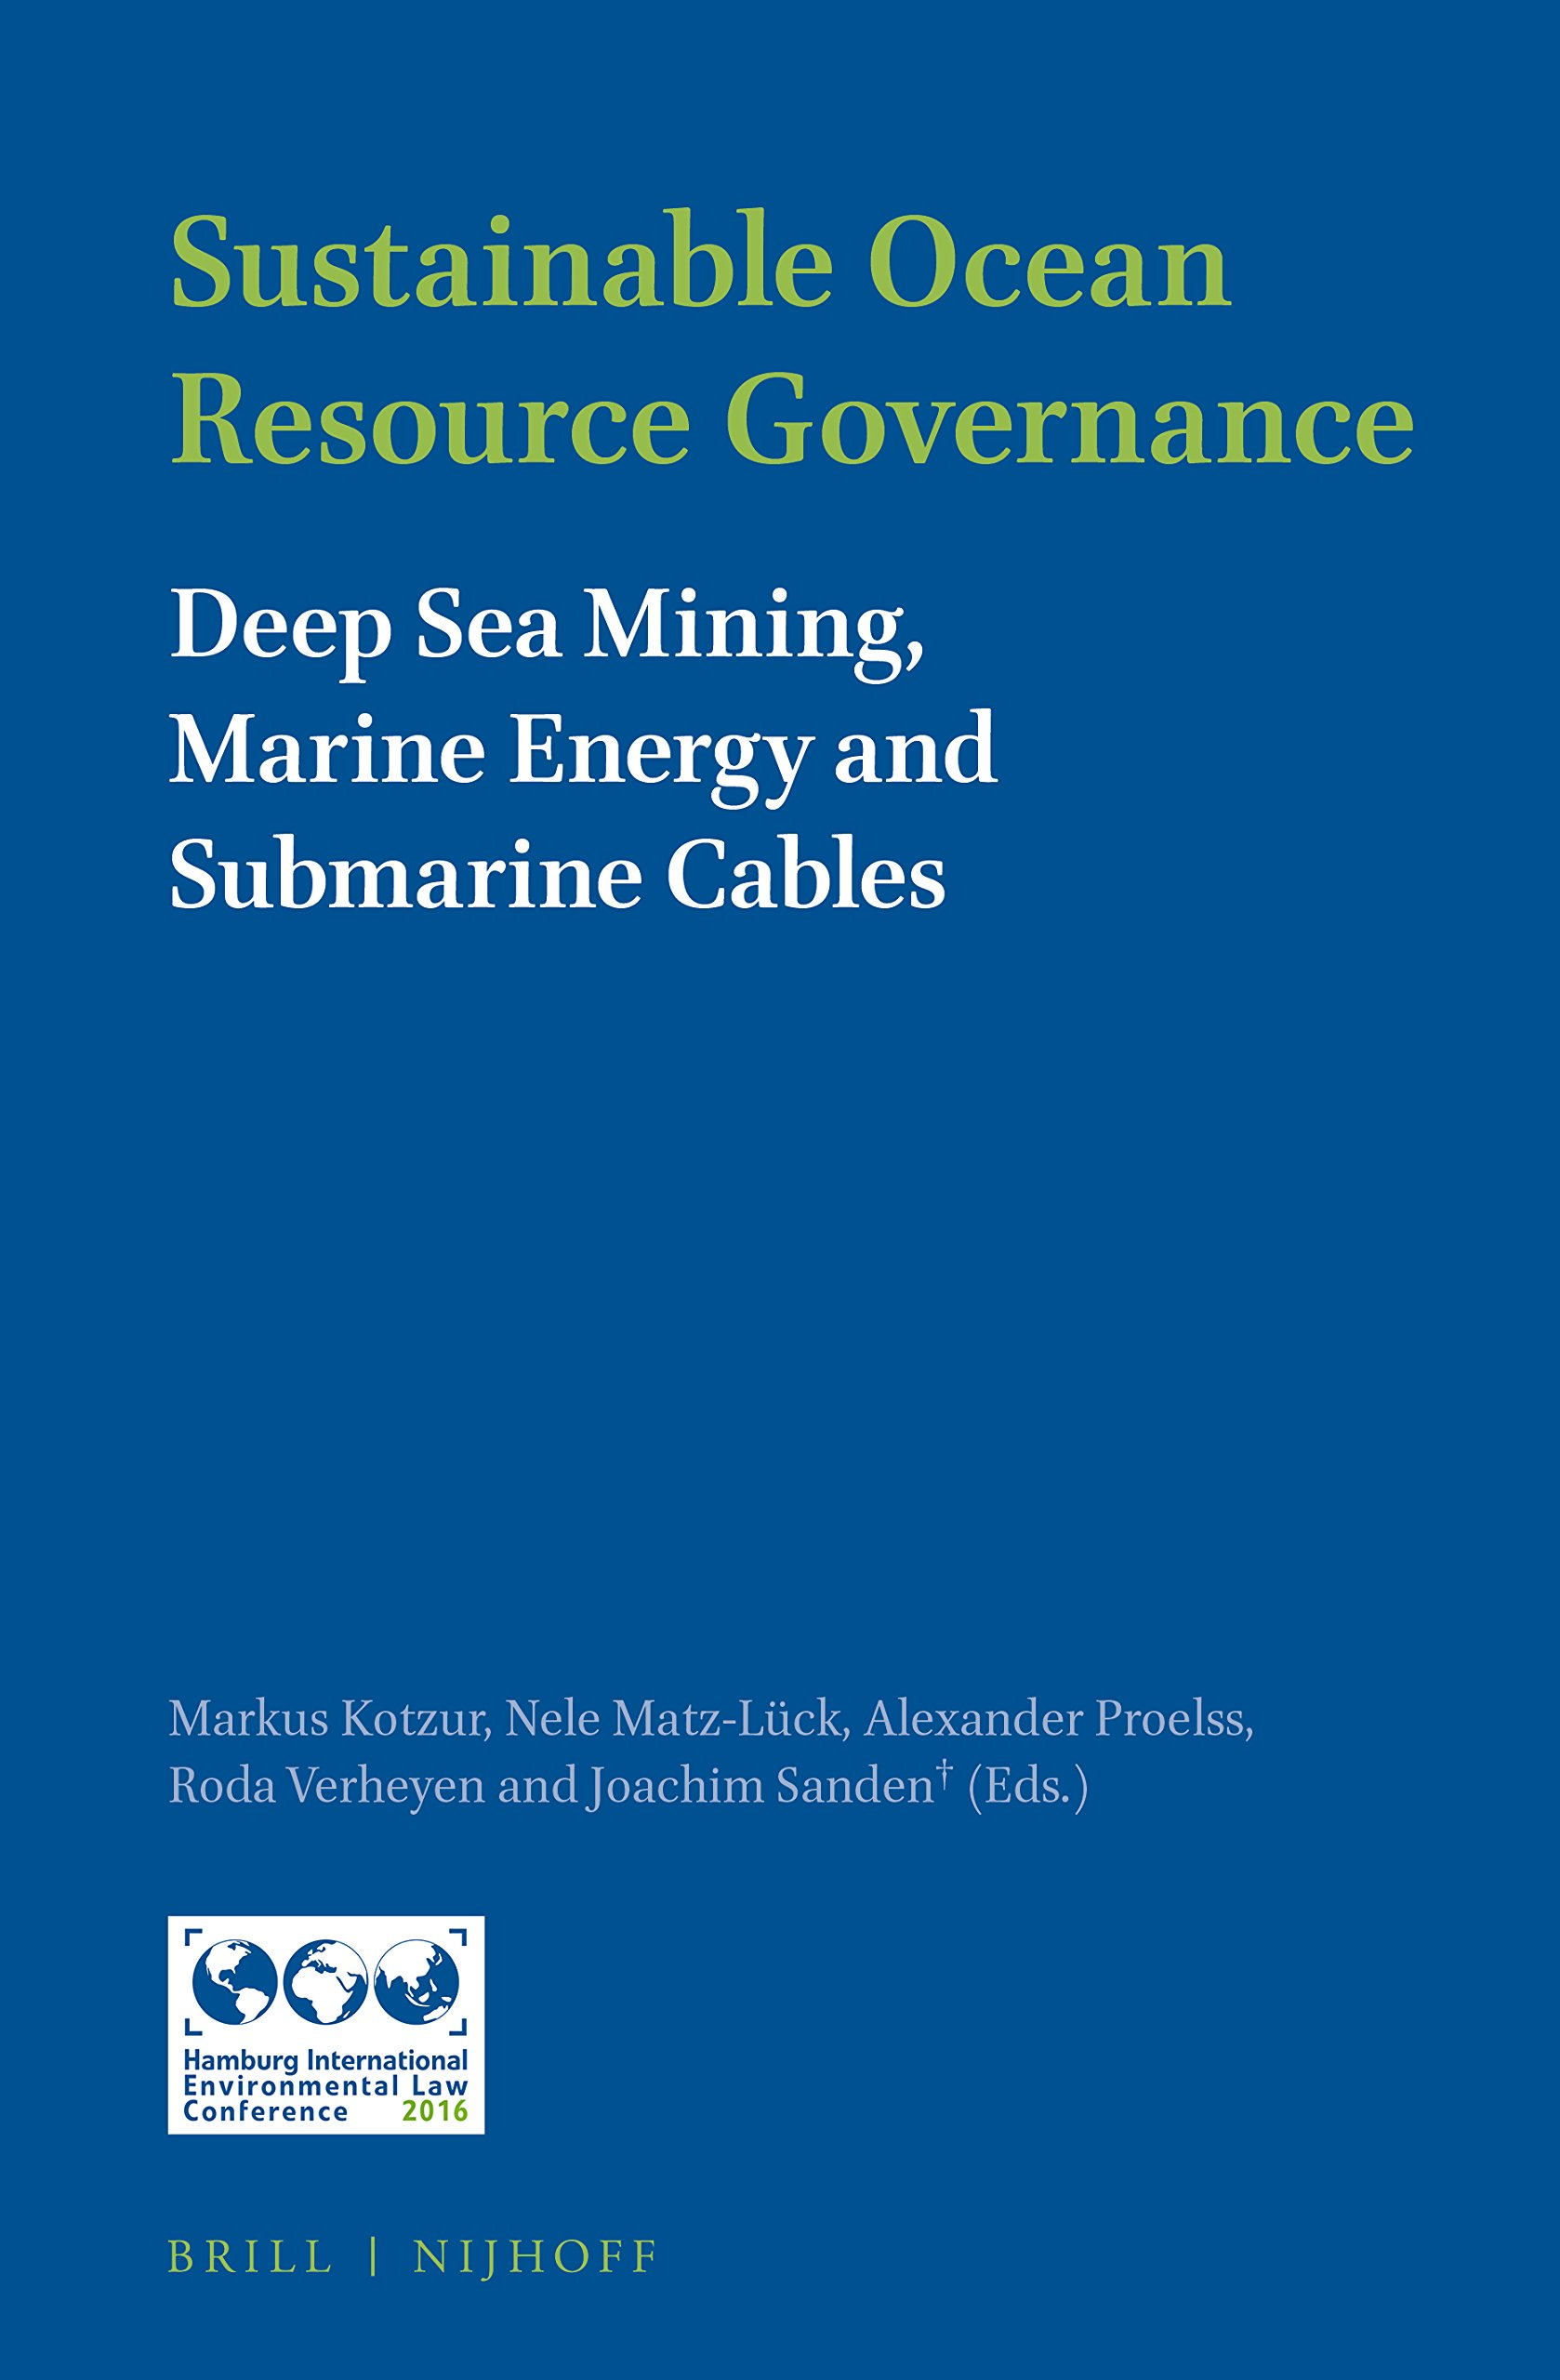 Sustainable Ocean Resource Governance by Brill | Nijhoff